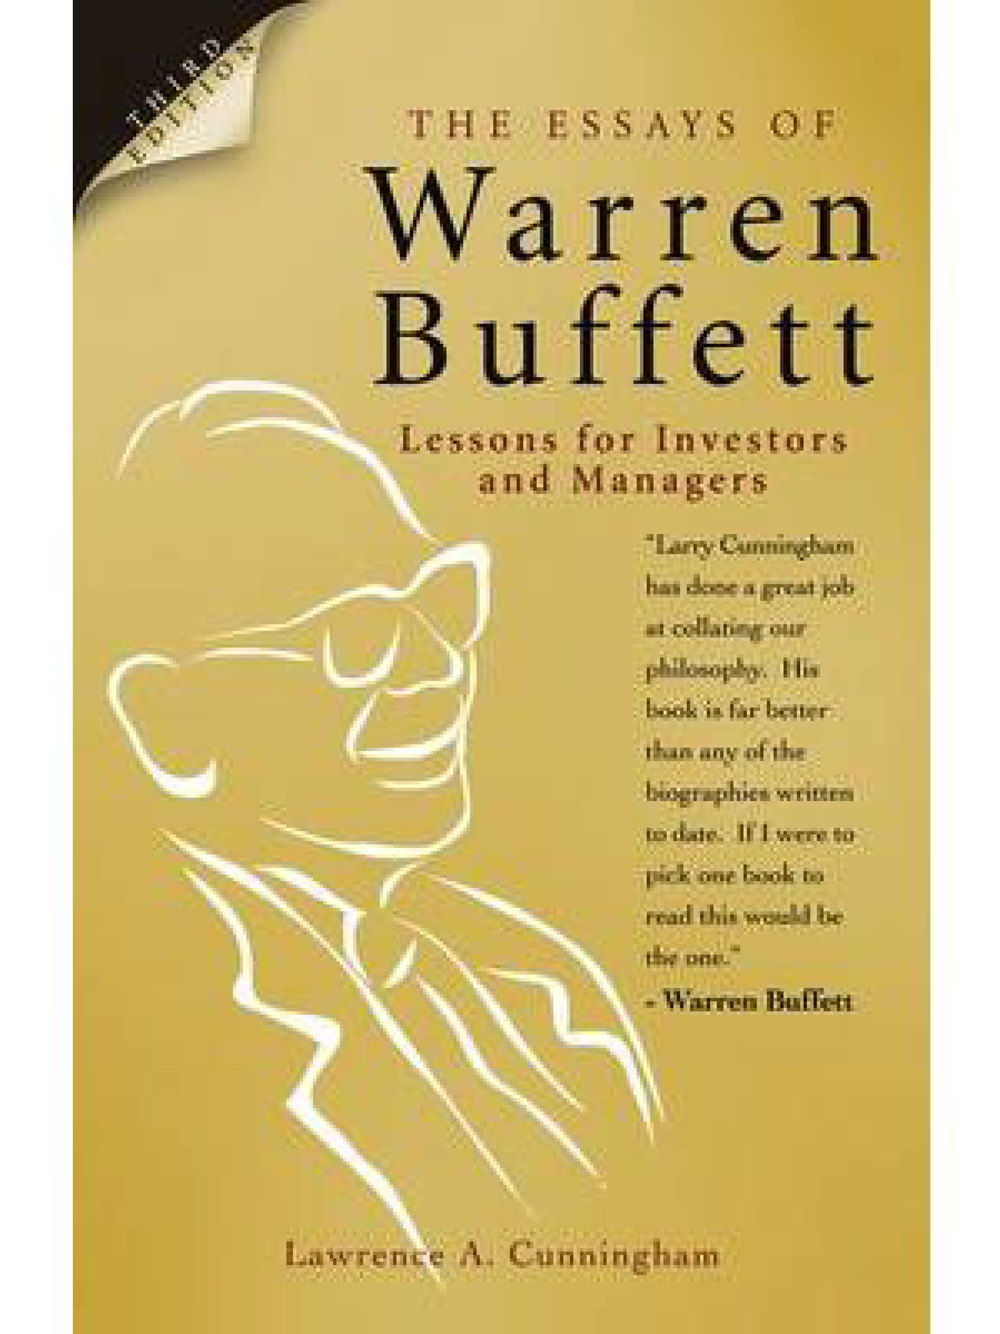 The Essays of Warren Buffett: Lessons for Corporate America. Lawrence Cunningham 2001 (Revised)